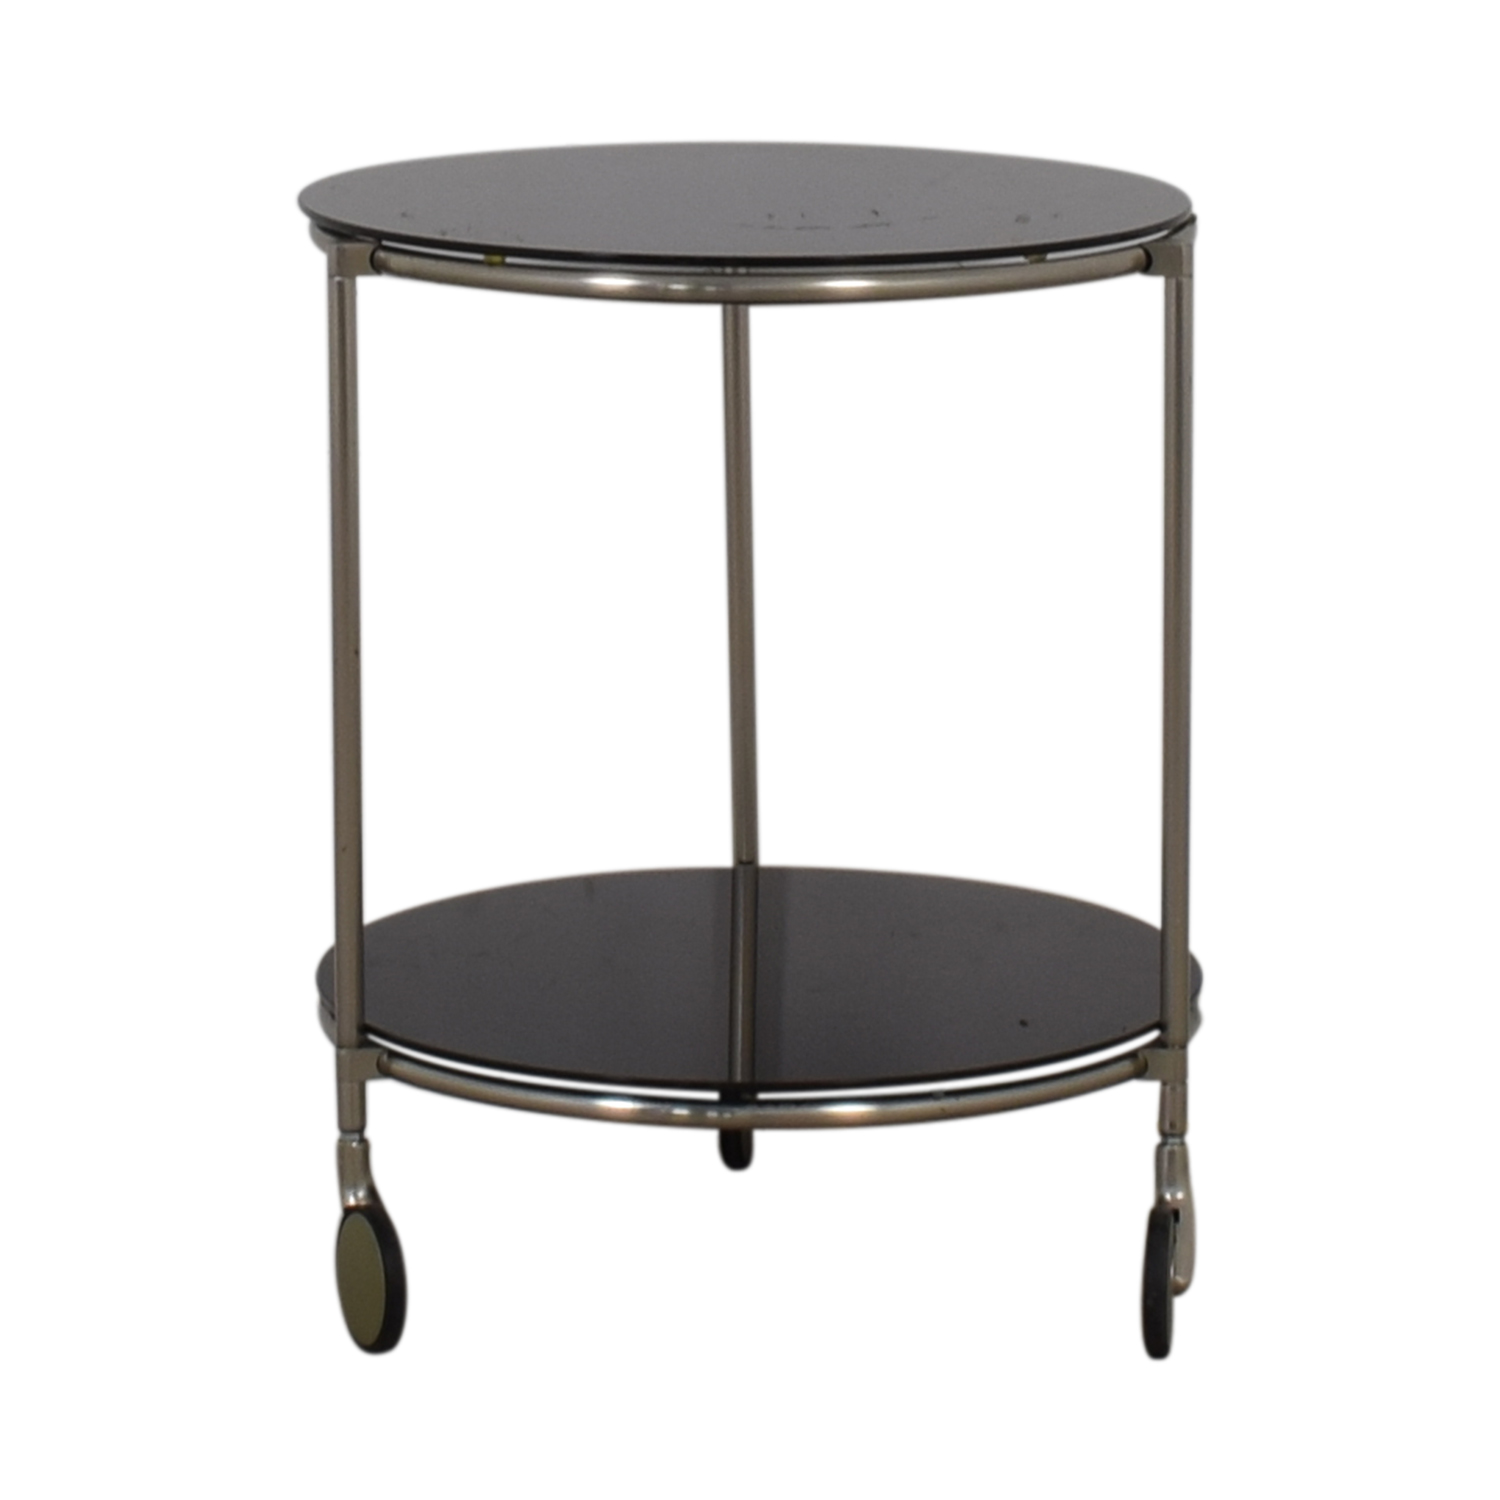 Black Glass and Chrome End Table for sale